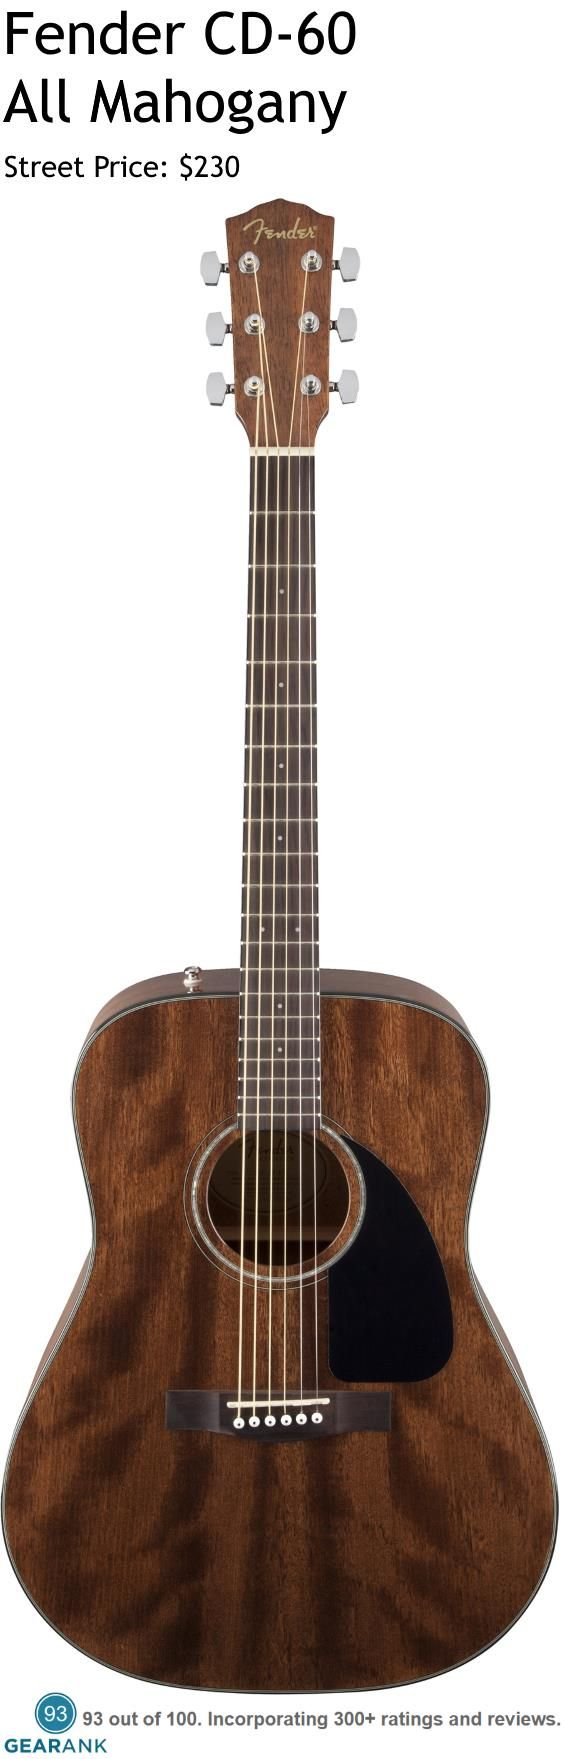 Fender CD-60 All Mahogany Acoustic Guitar. This is one of the highest rated acoustic guitars you can buy for under $300.  For a detailed Guide to Acoustic Guitars see https://www.gearank.com/guides/acoustic-guitars